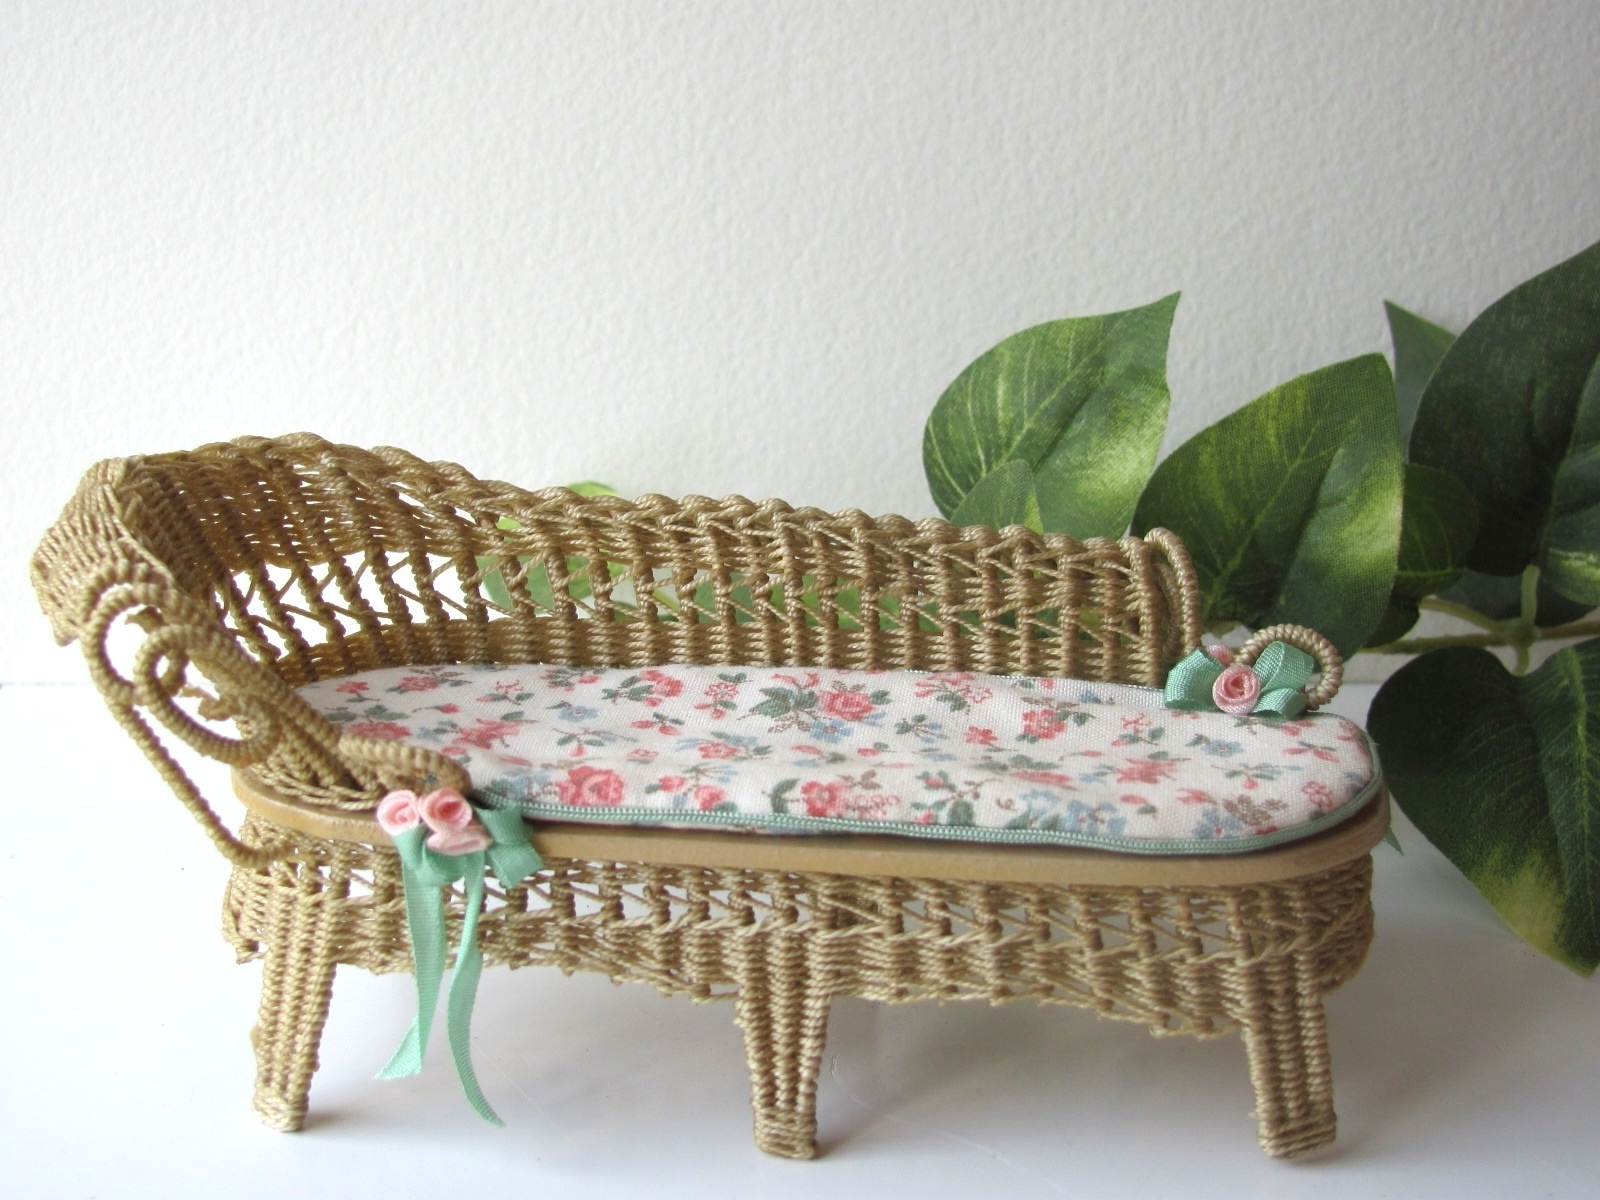 Best And Newest Country Cottage Chic Wicker Chaise Lounge 1/12 Miniature Dollhouse Pertaining To Wicker Chaise Lounges (View 15 of 15)